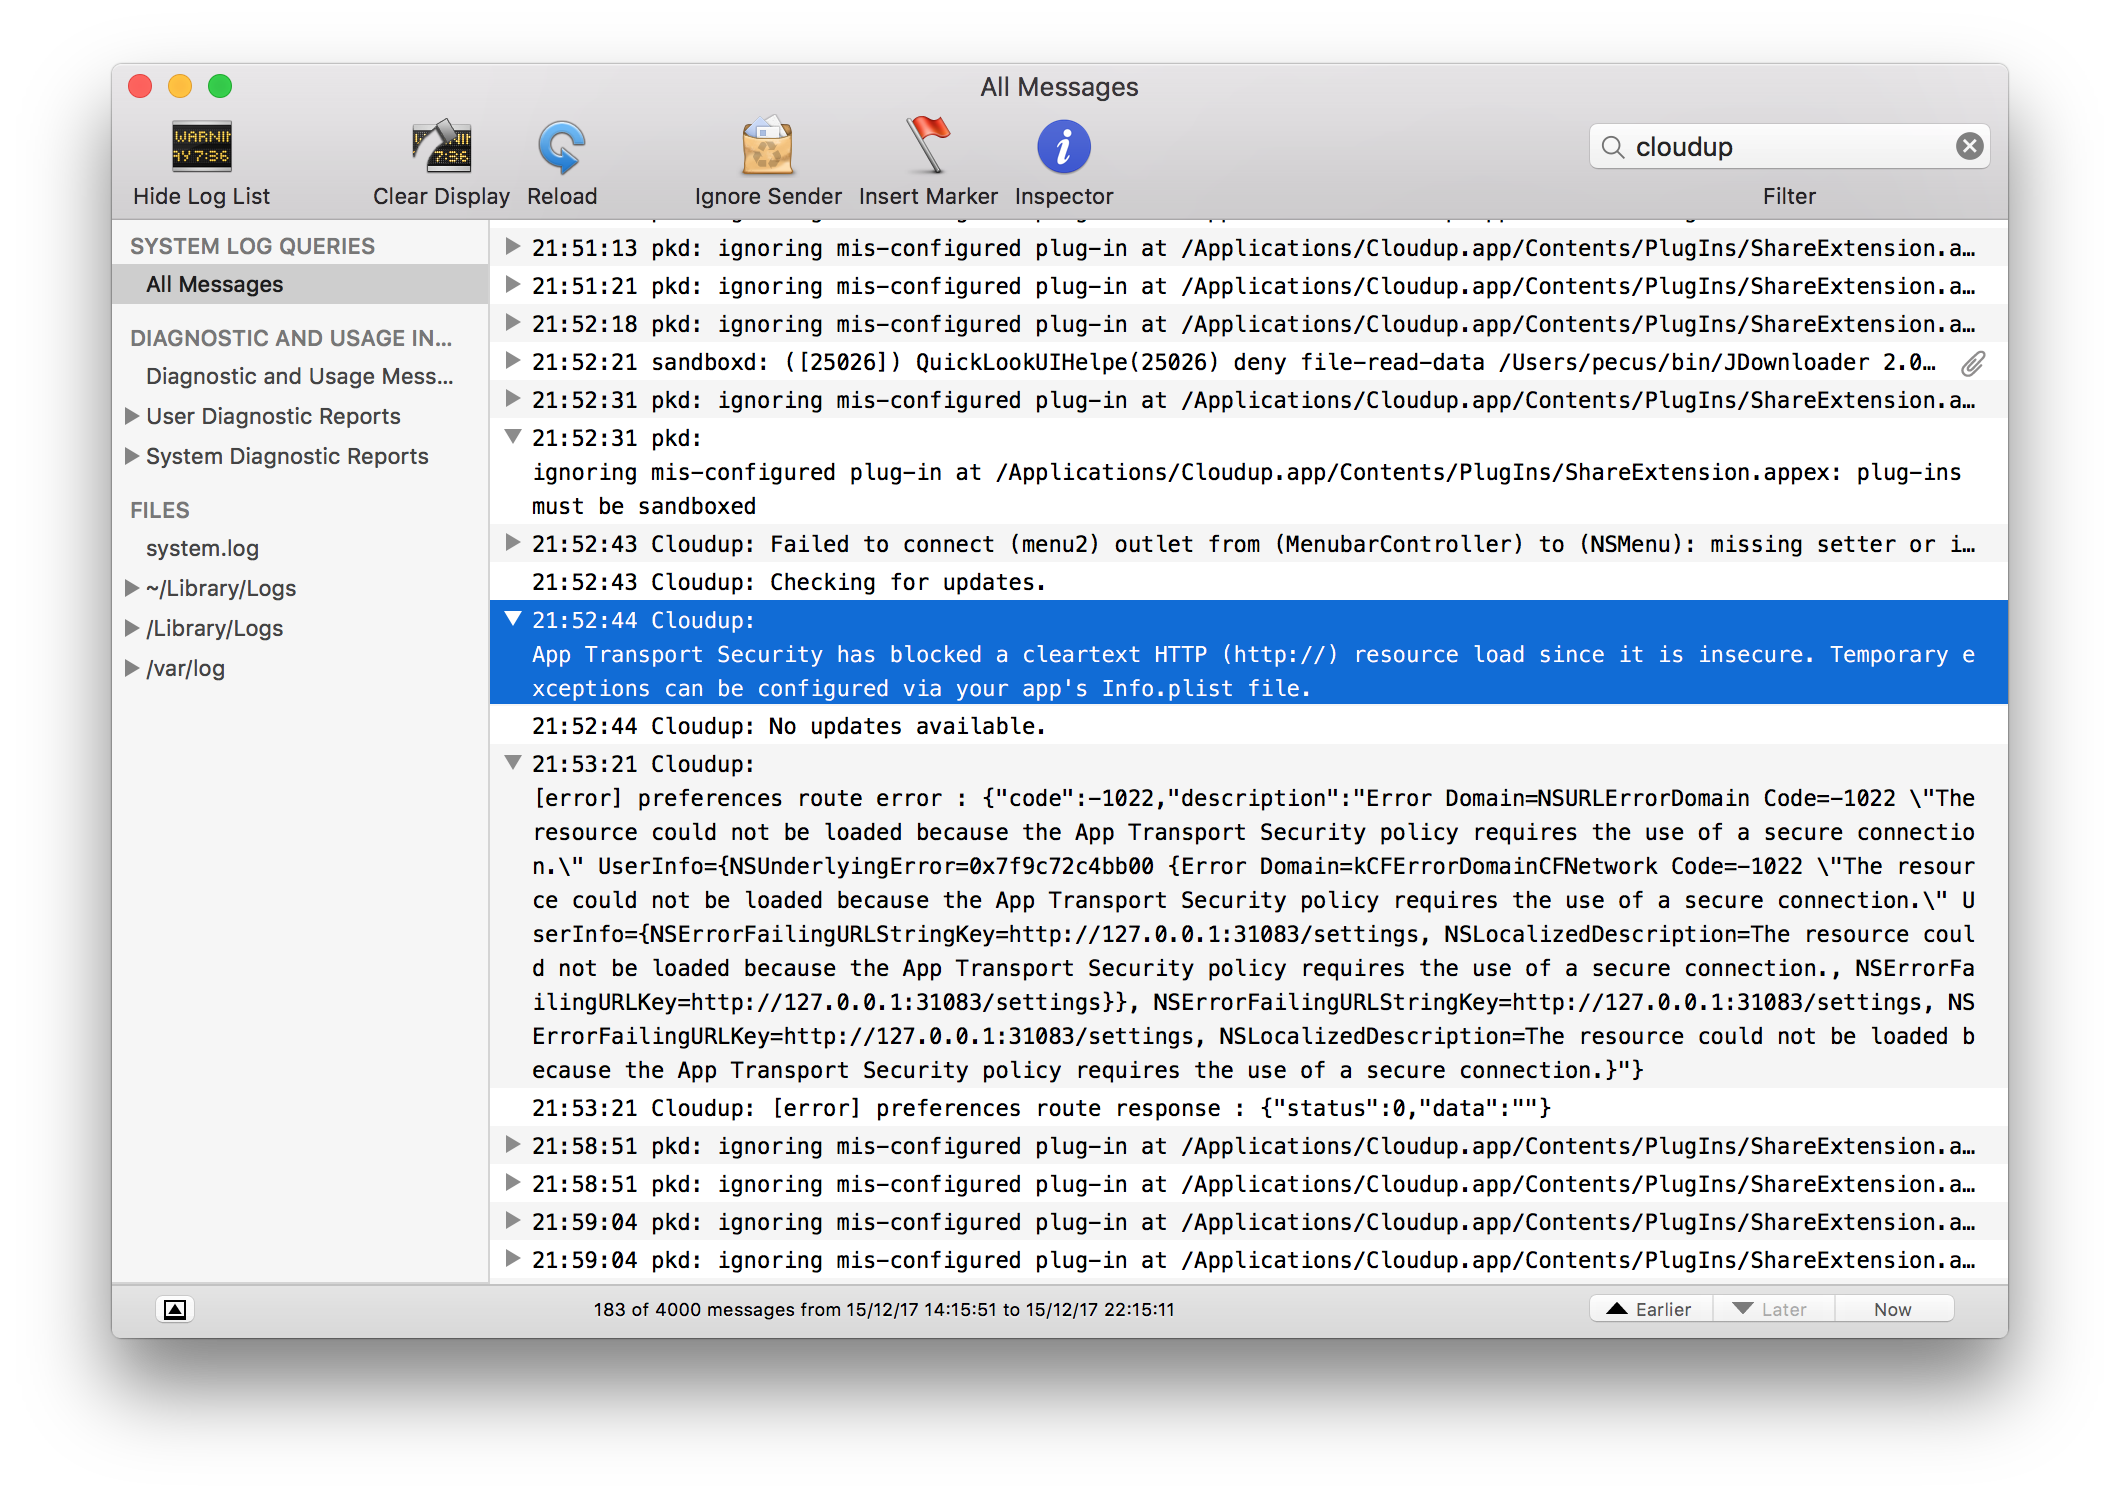 App Transport Security Exceptions on Mac OS X 10 11: how to